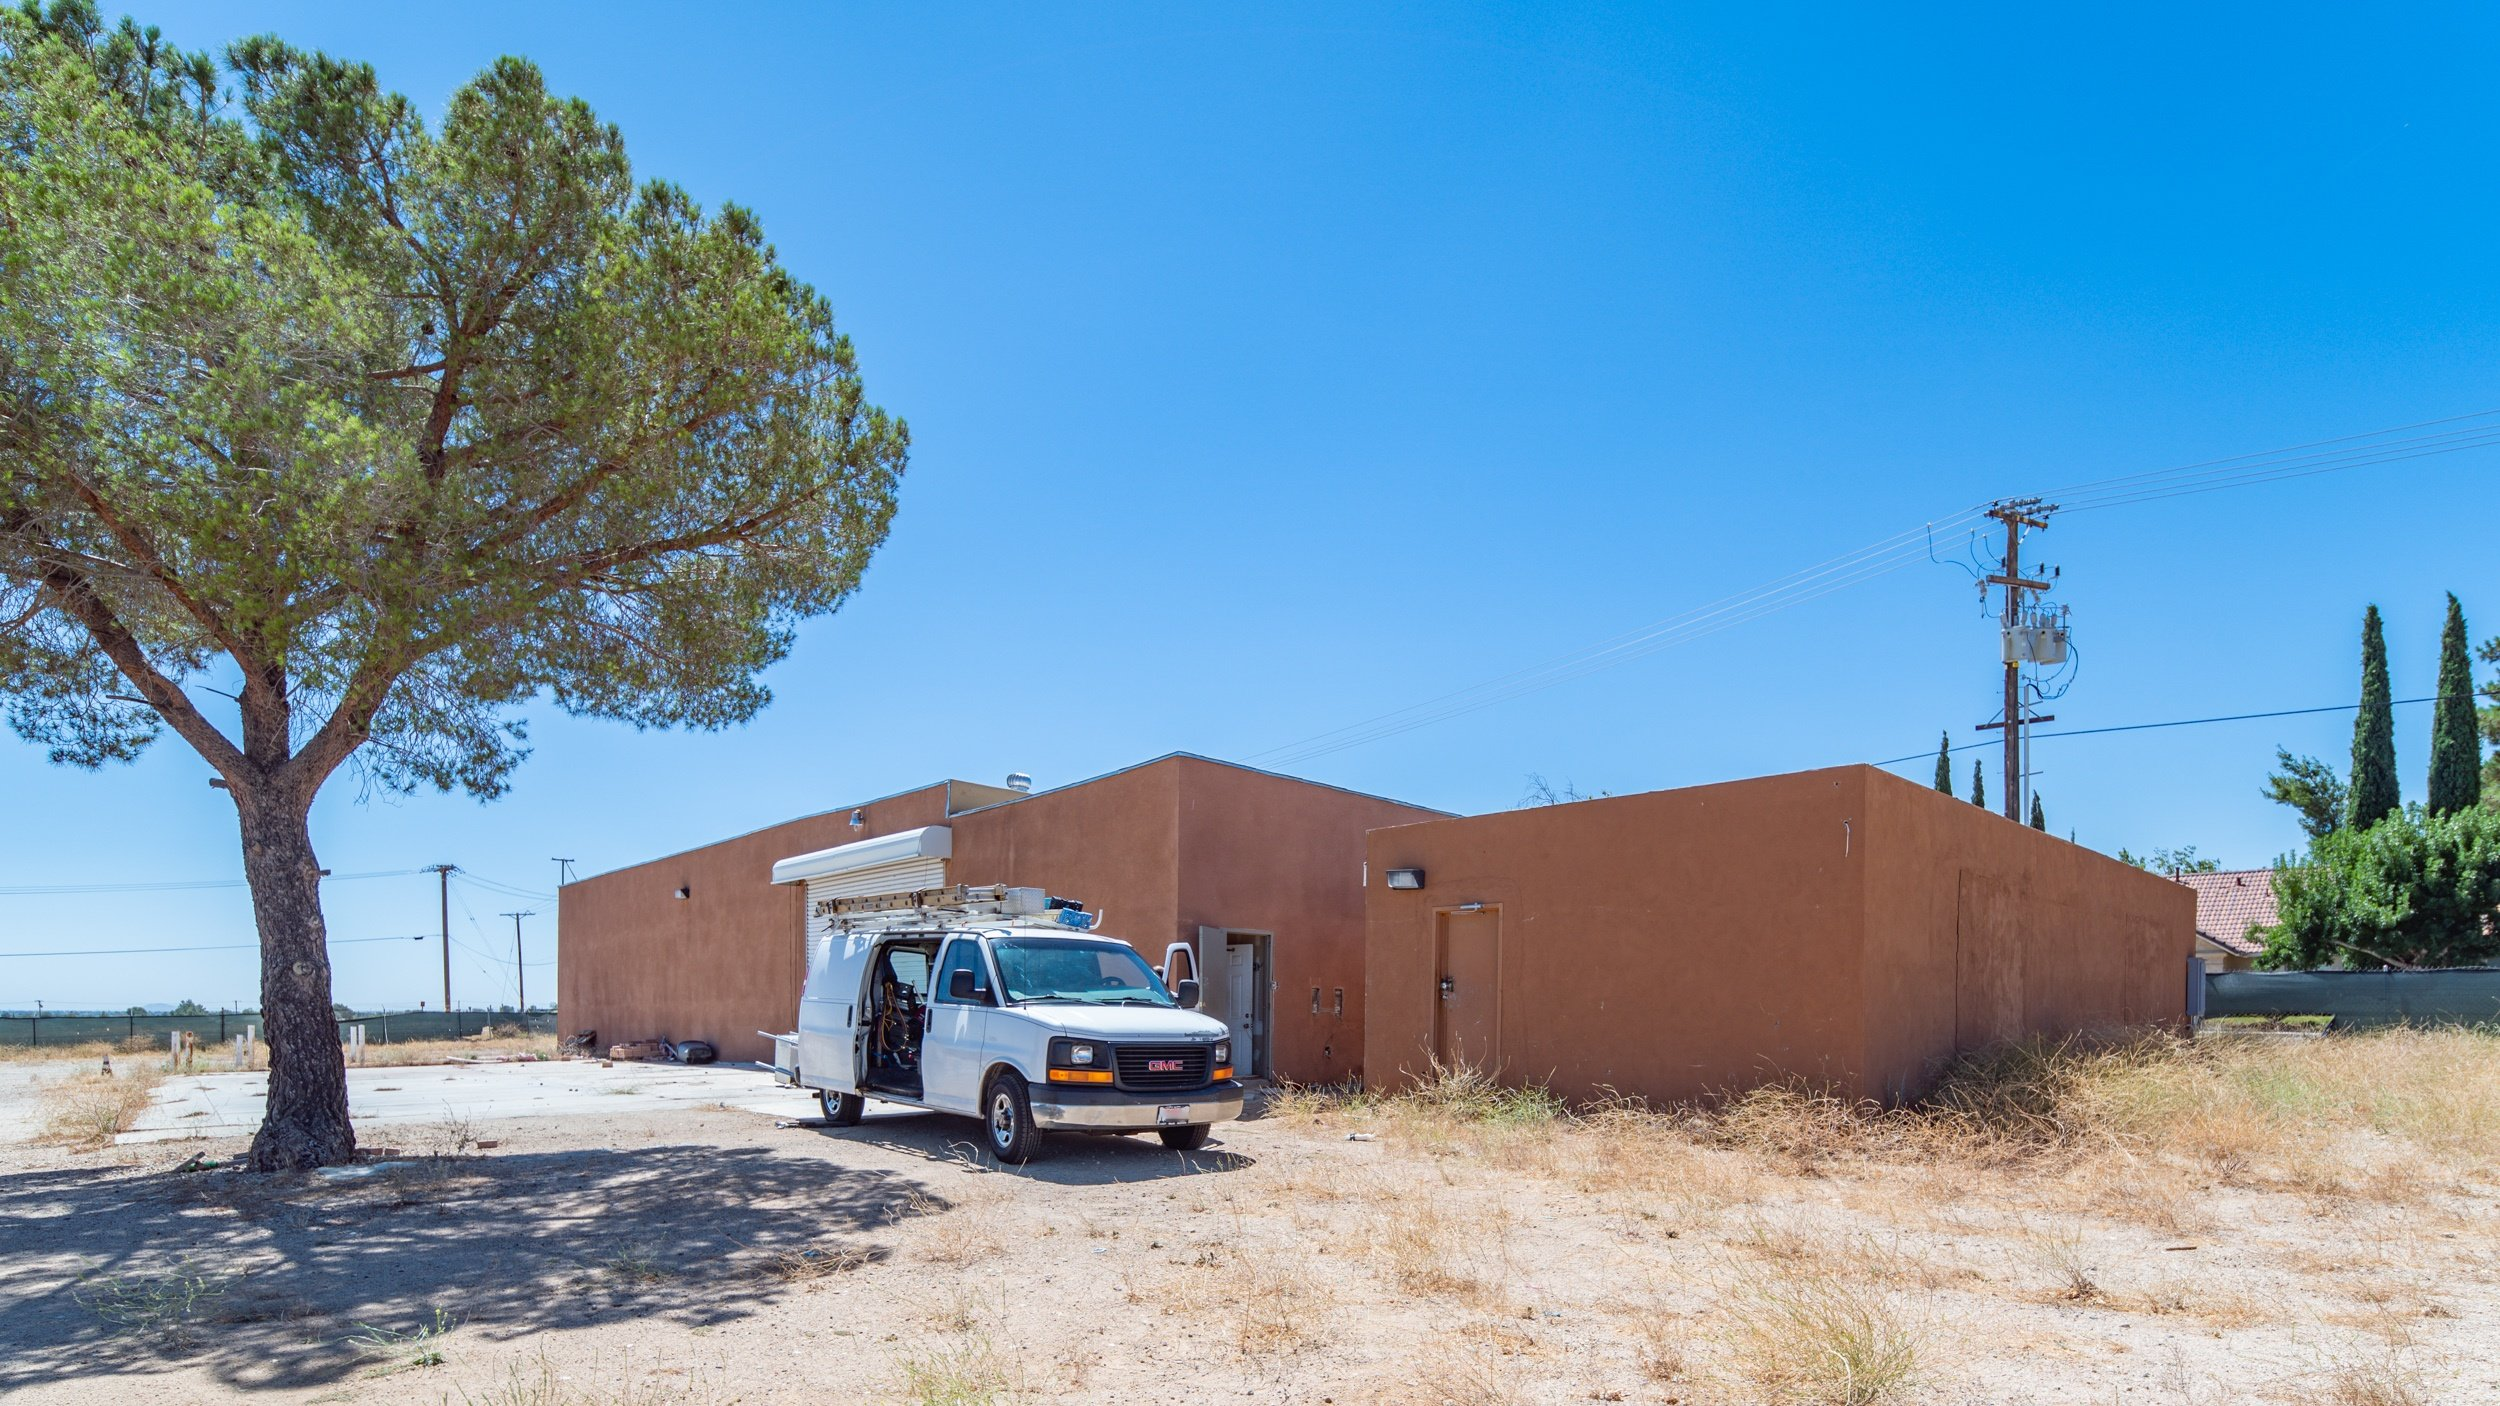 Palmdale Industrial Real Estate Building Two